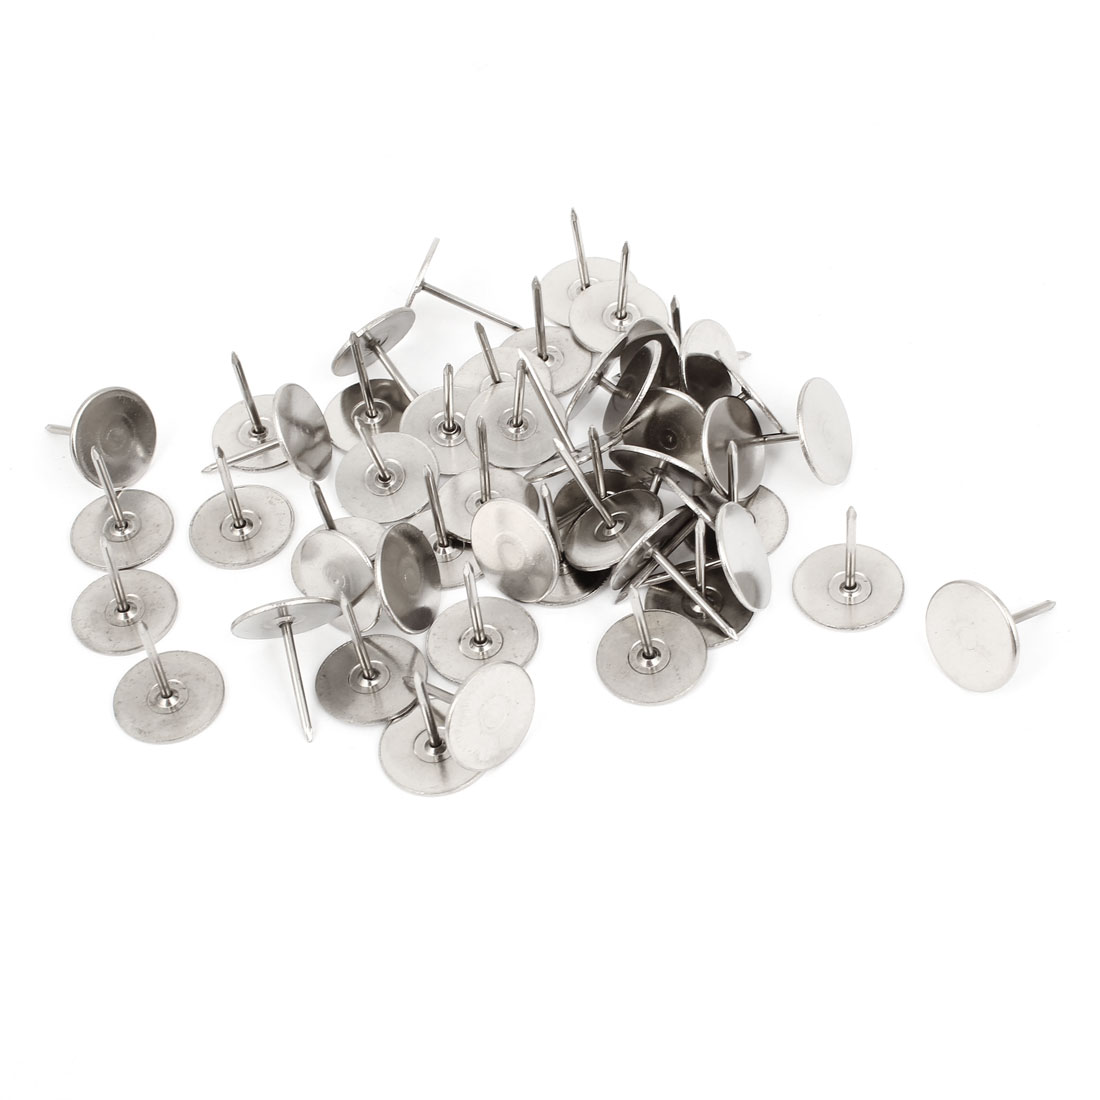 50 Pcs Silver Tone Round Top Message Board Pushpins Thumb Tacks 15mm Dia